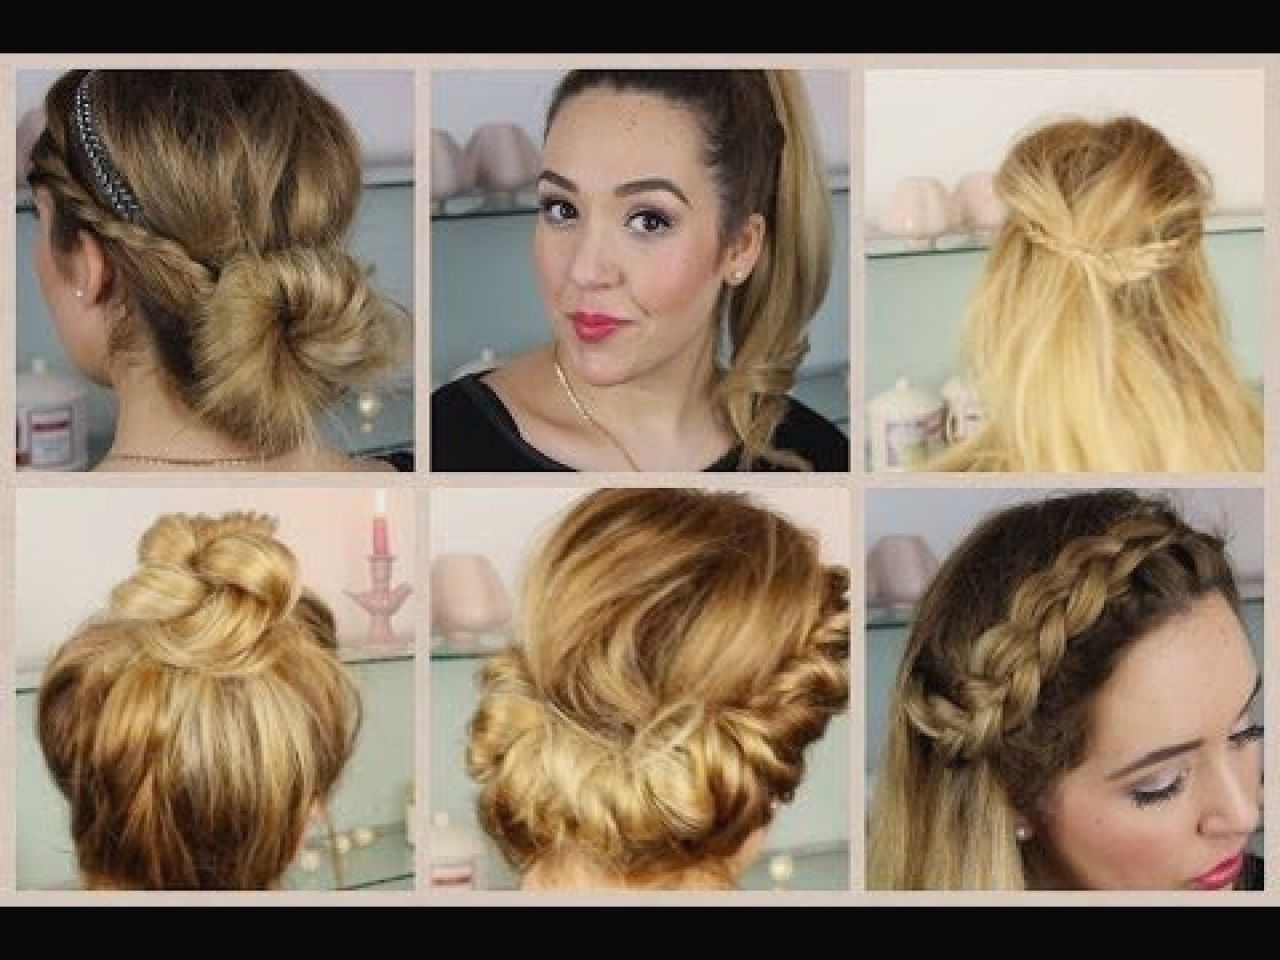 Cute hairstyles hairstyles for long hair youtube medium length hair cute hairstyles hairstyles for long hair youtube medium length hair youtube hairstyle elegant hairstyles hairstyles solutioingenieria Choice Image